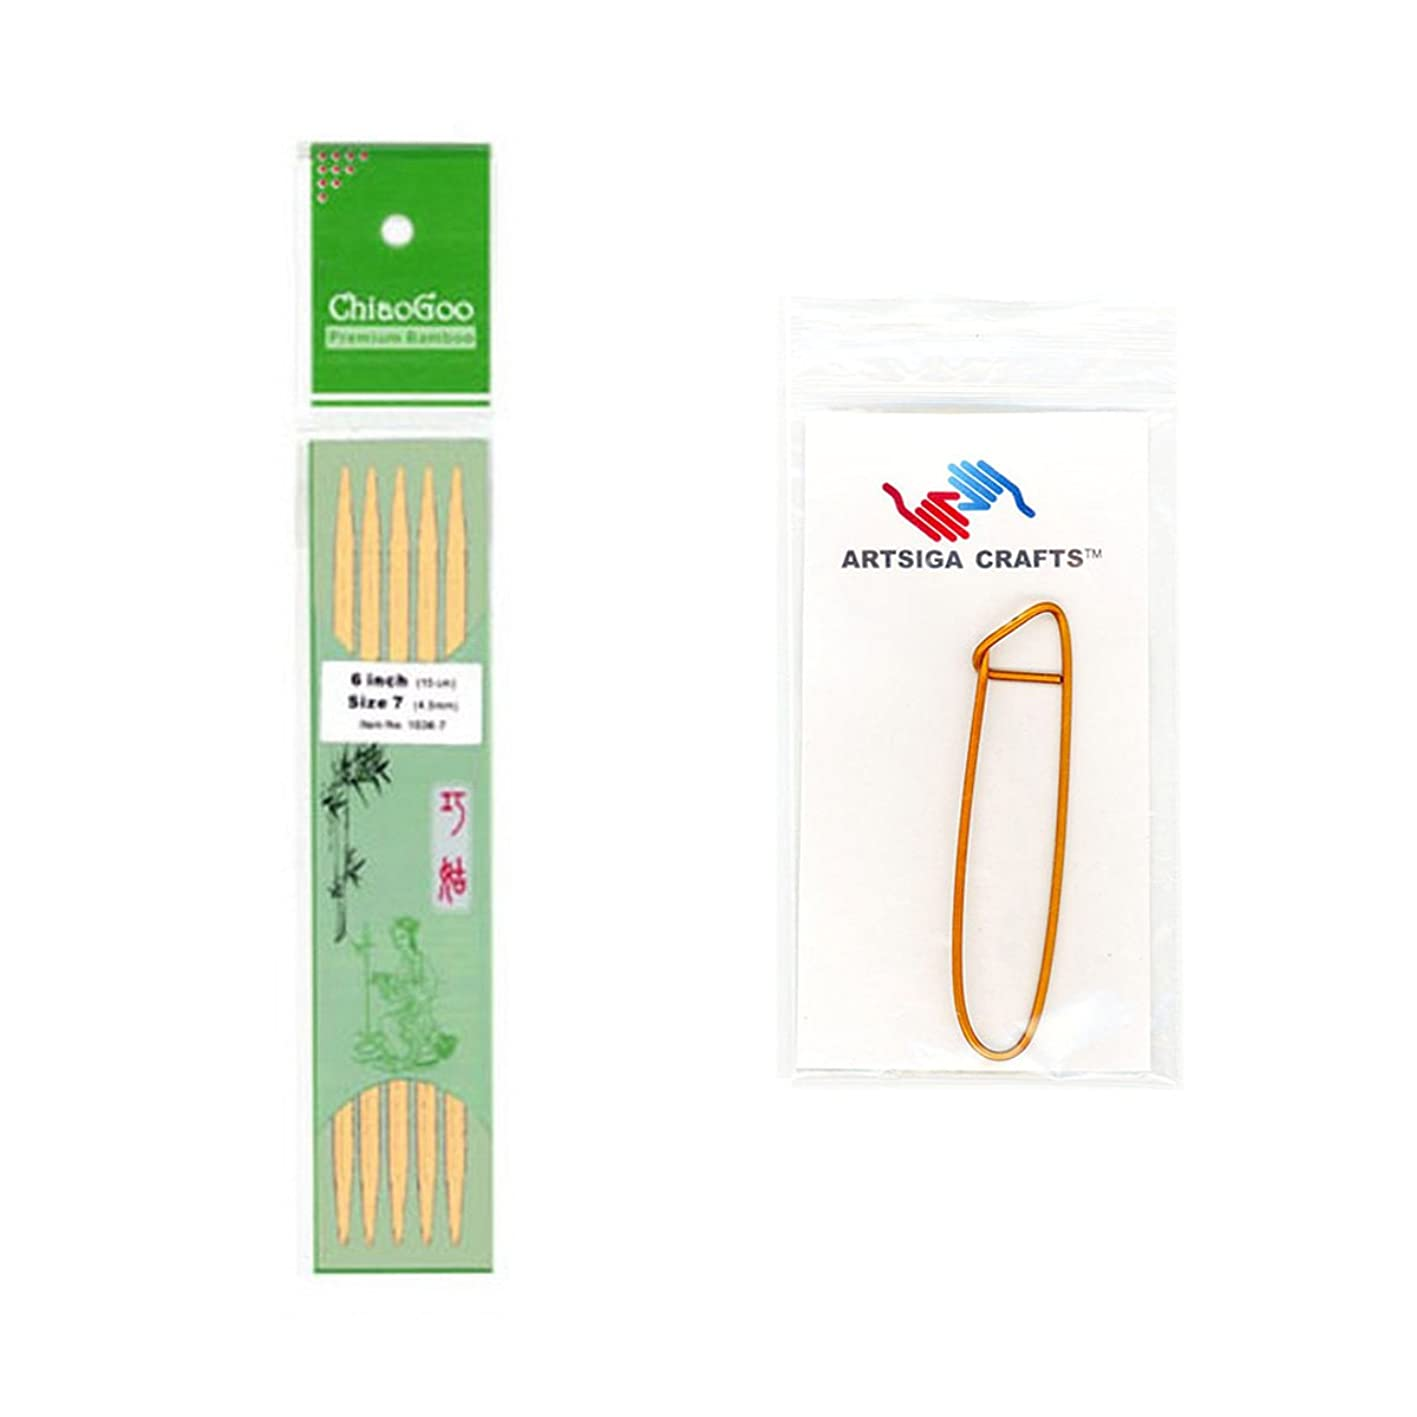 ChiaoGoo Double Point 5-inch (13cm) Bamboo Natural Knitting Needle; Size US 4 (3.5mm) Bundle with 1 Artsiga Crafts Stitch Holder 1015-4 spdzxcgwjip568